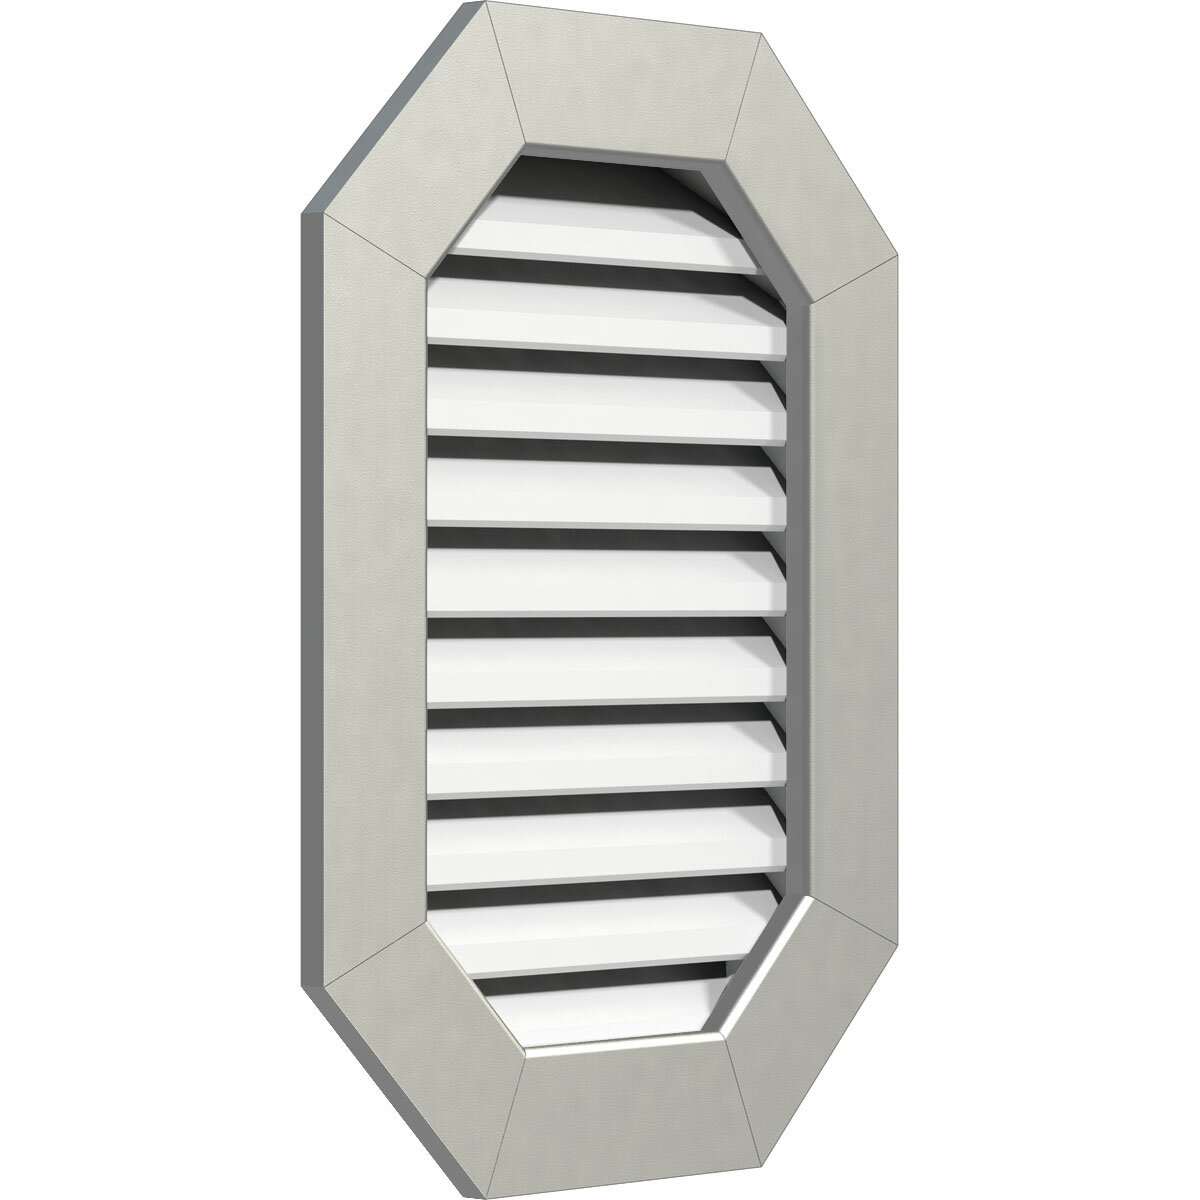 Ekena Millwork Pvc Vertical Elongated Octagon Gable Vent With Flat Trim Frame In White Wayfair